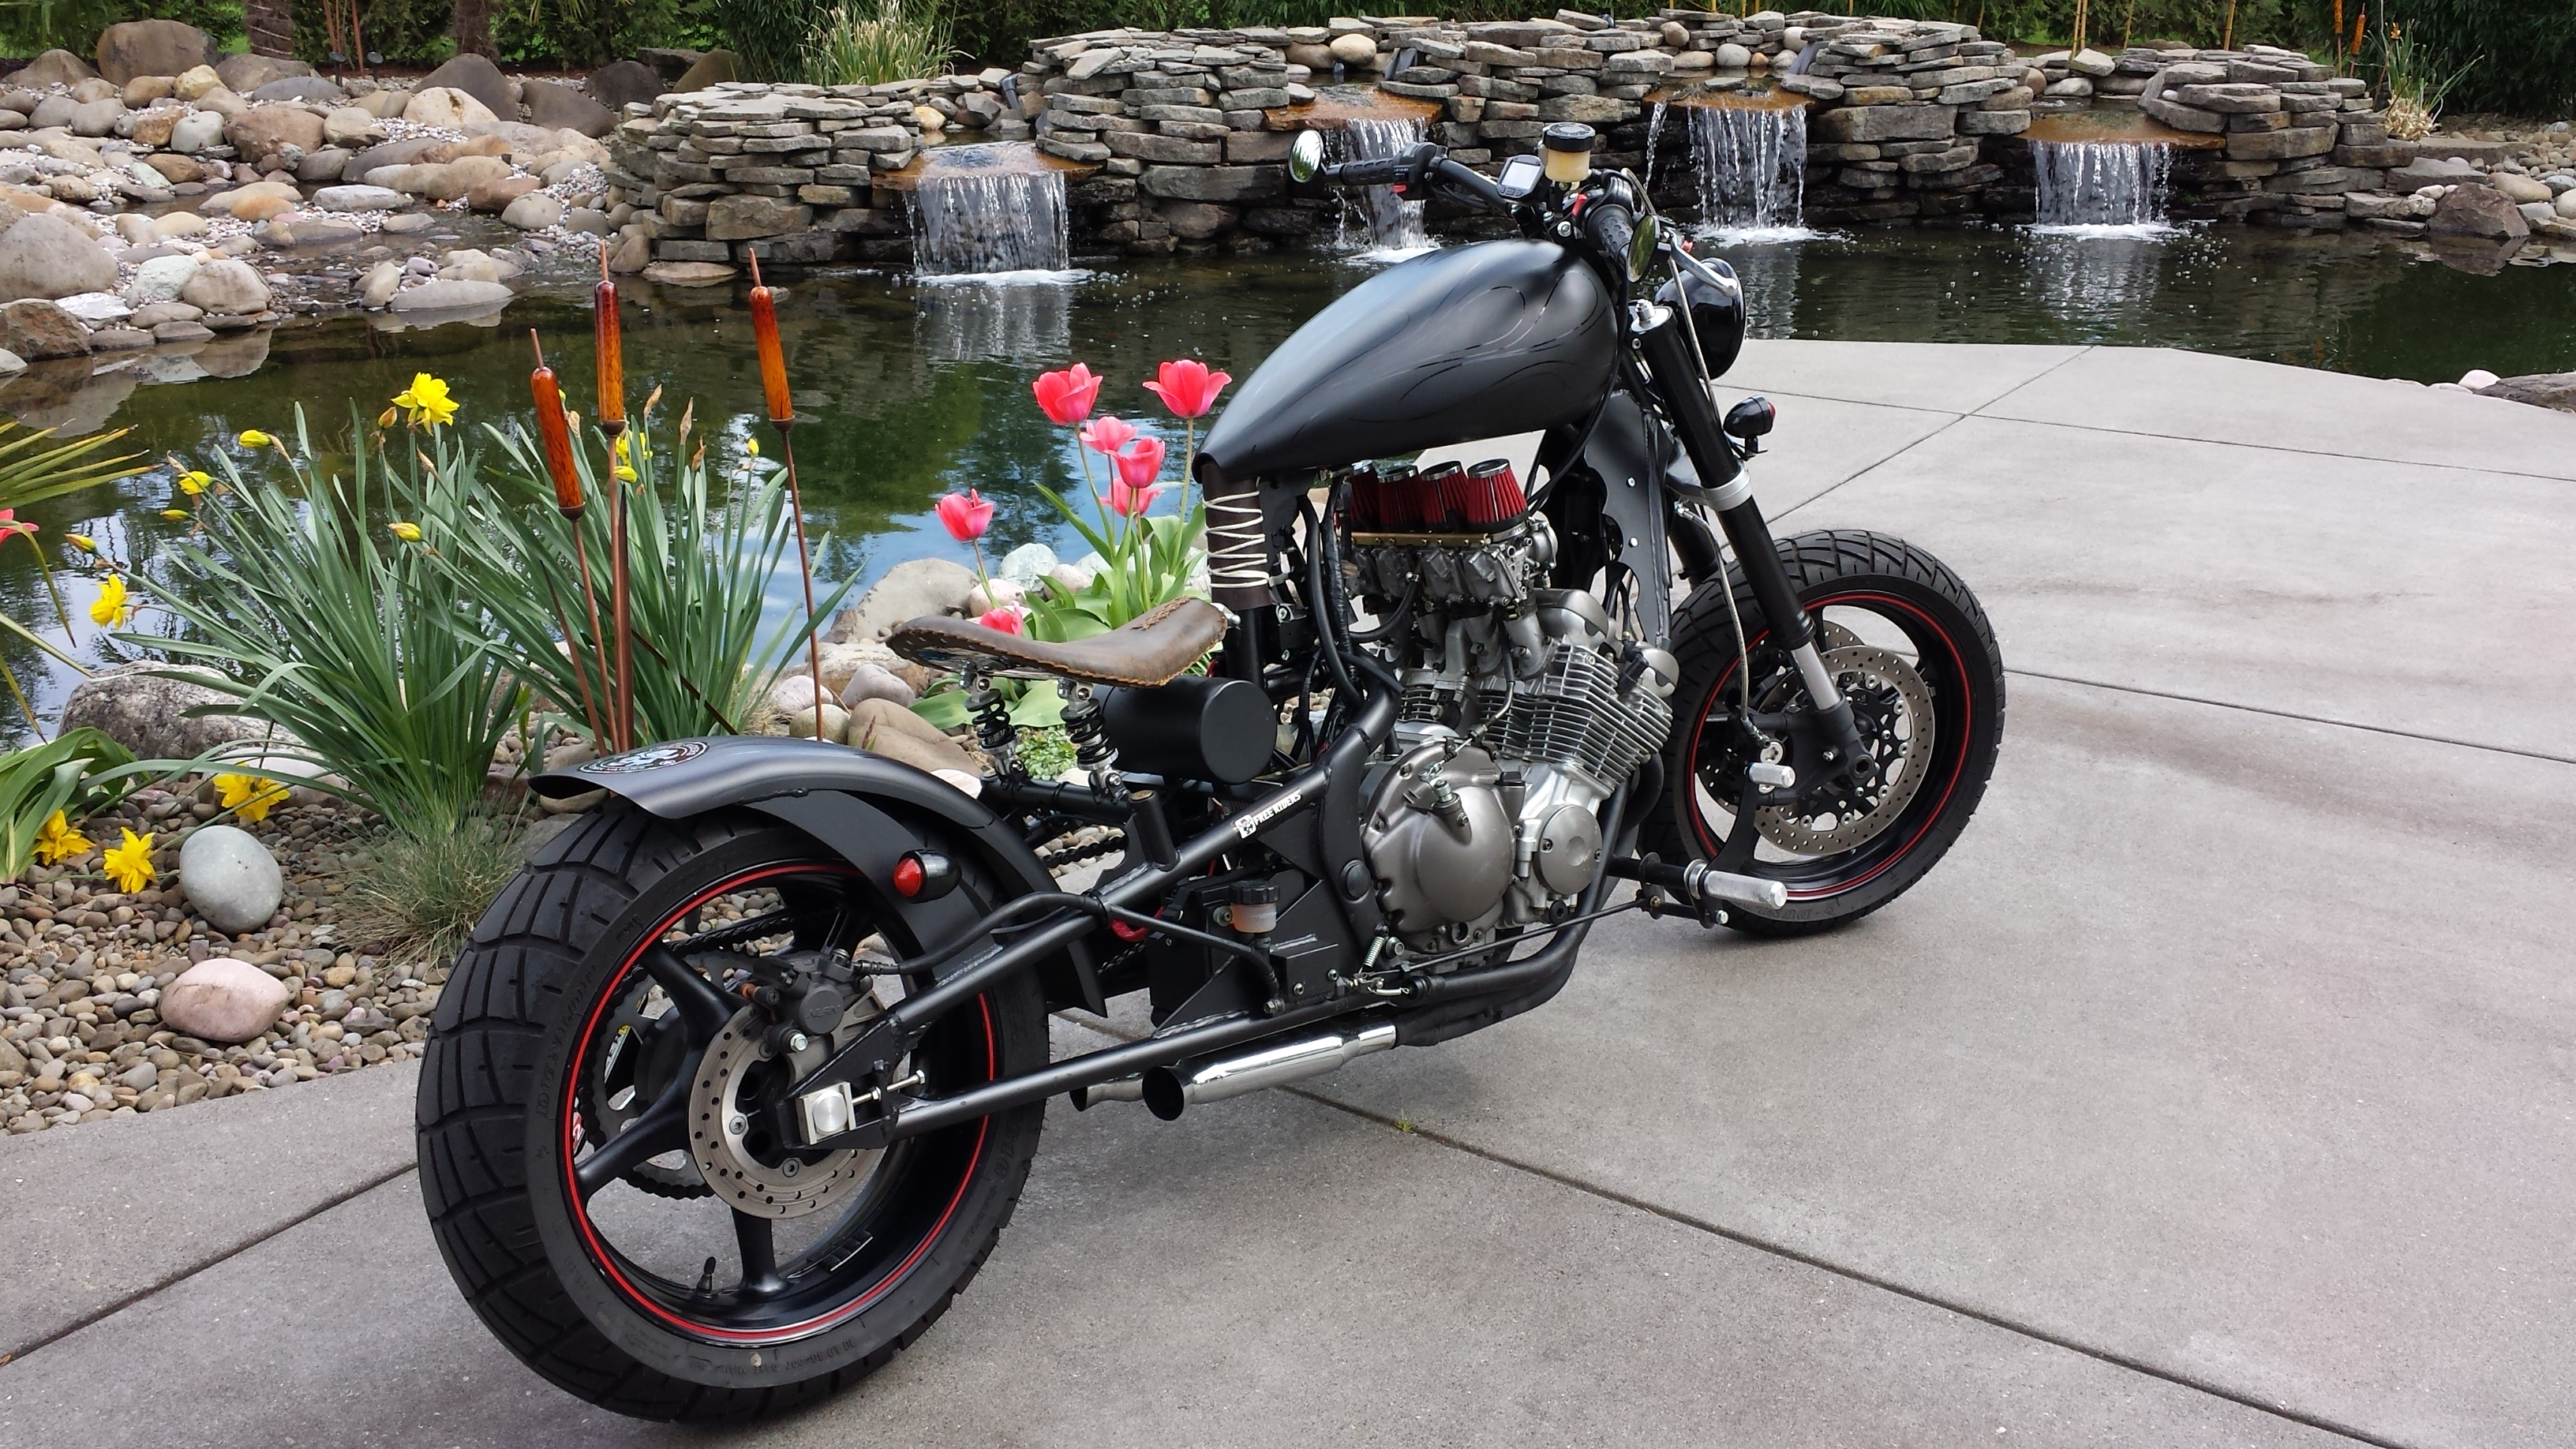 Custom Streached and Raked Bobber, Cruiser, Coolness ...